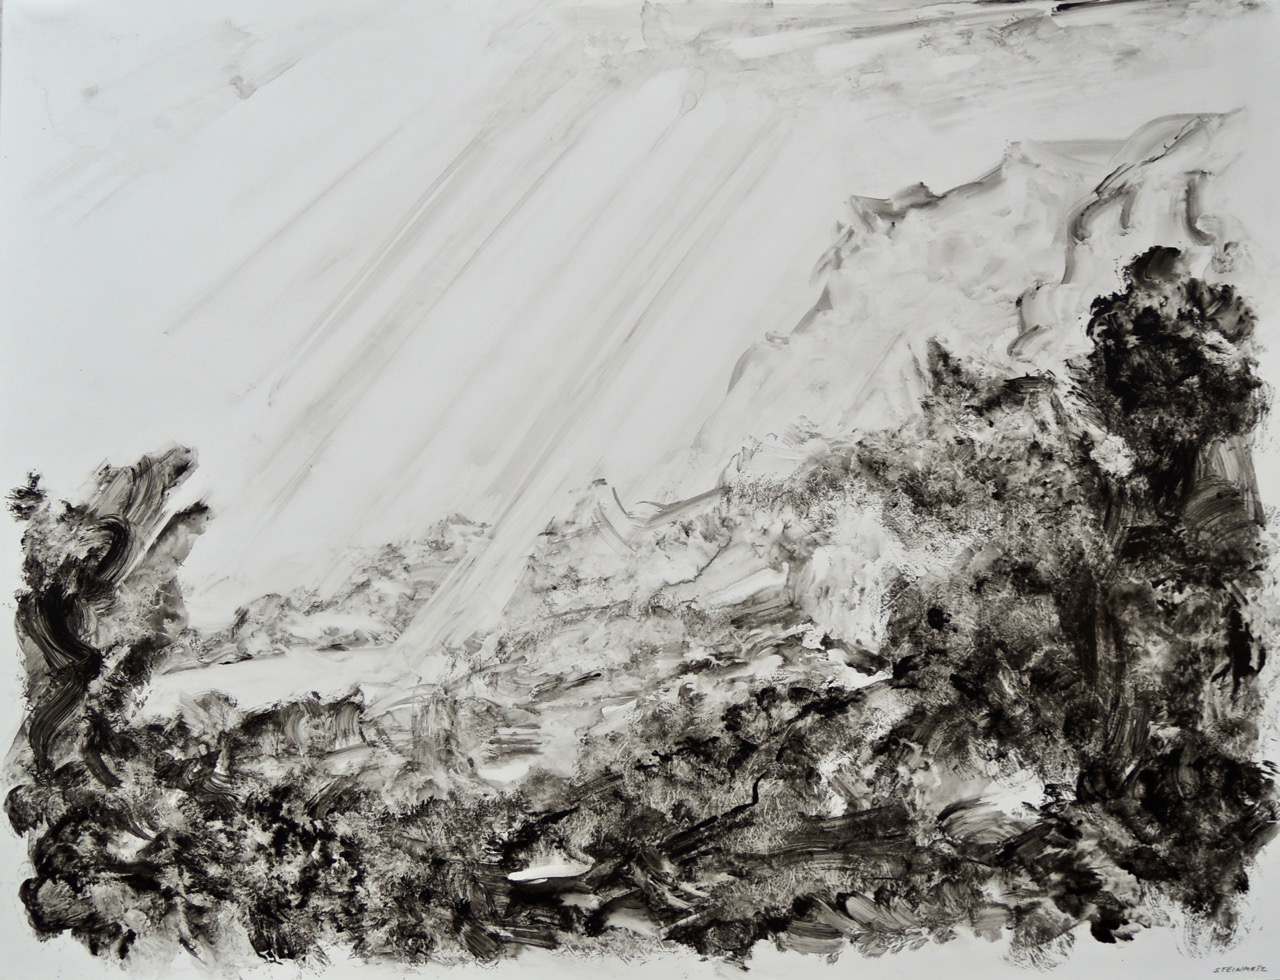 """Artist: Leon Steinmetz  Name: Imaginary Landscapes  Size: 13"""" x 20""""  Method: ink washes on archival acrylic sheet  Condition: original  Price:  Inquire"""